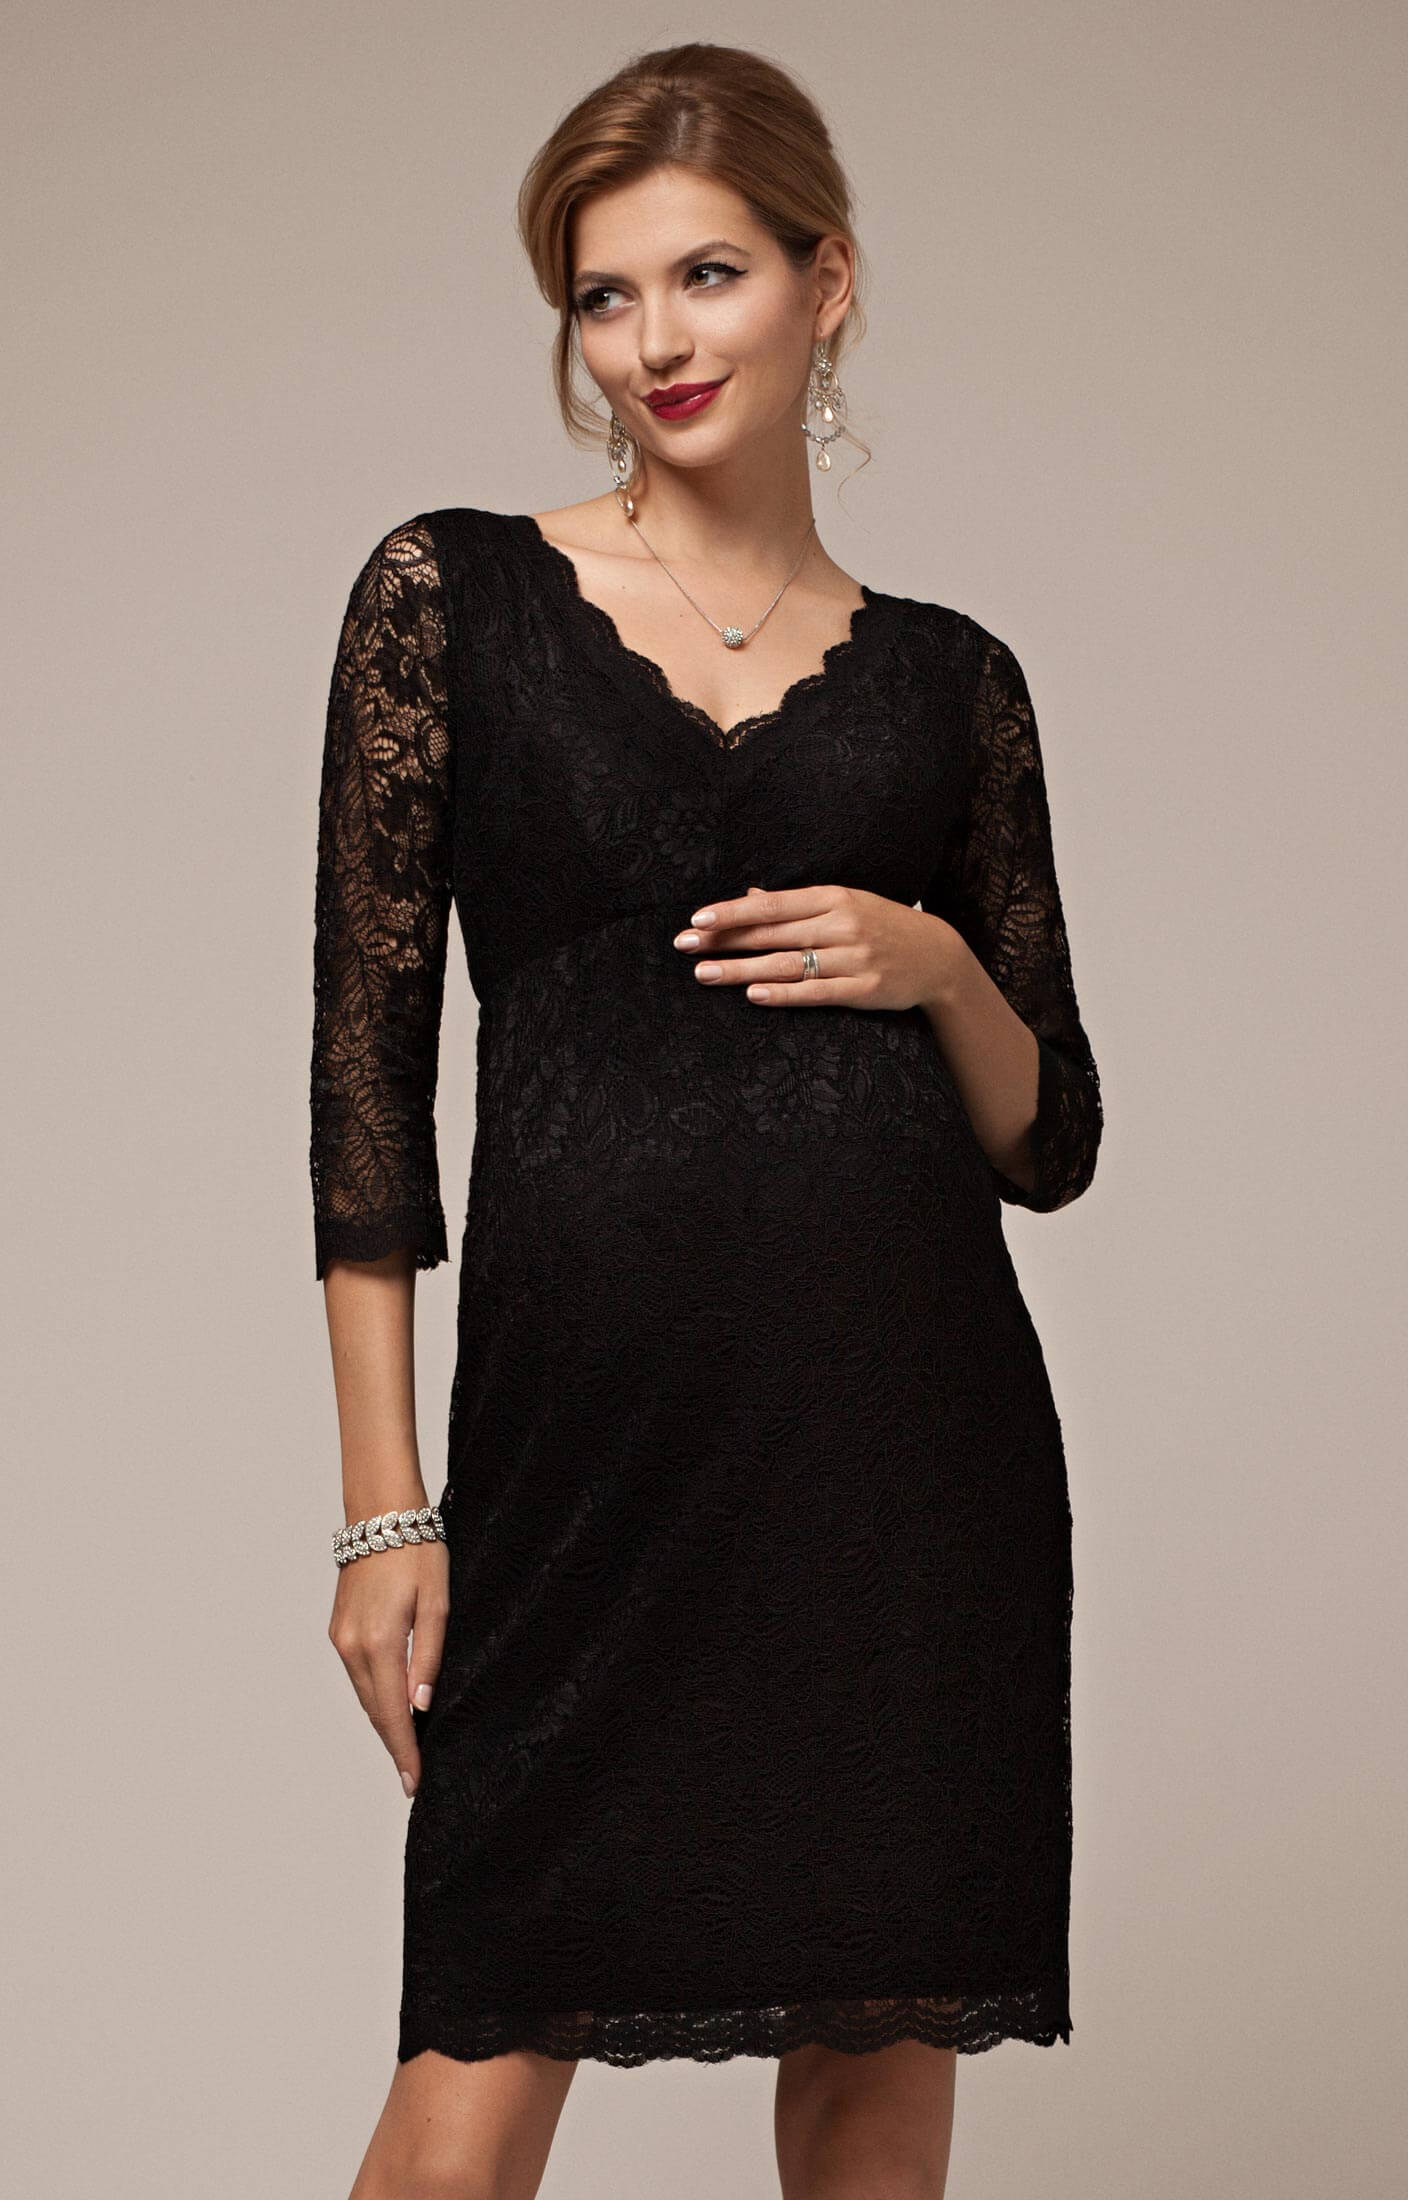 Chloe lace maternity dress black maternity wedding dresses chloe lace maternity dress black by tiffany rose ombrellifo Gallery